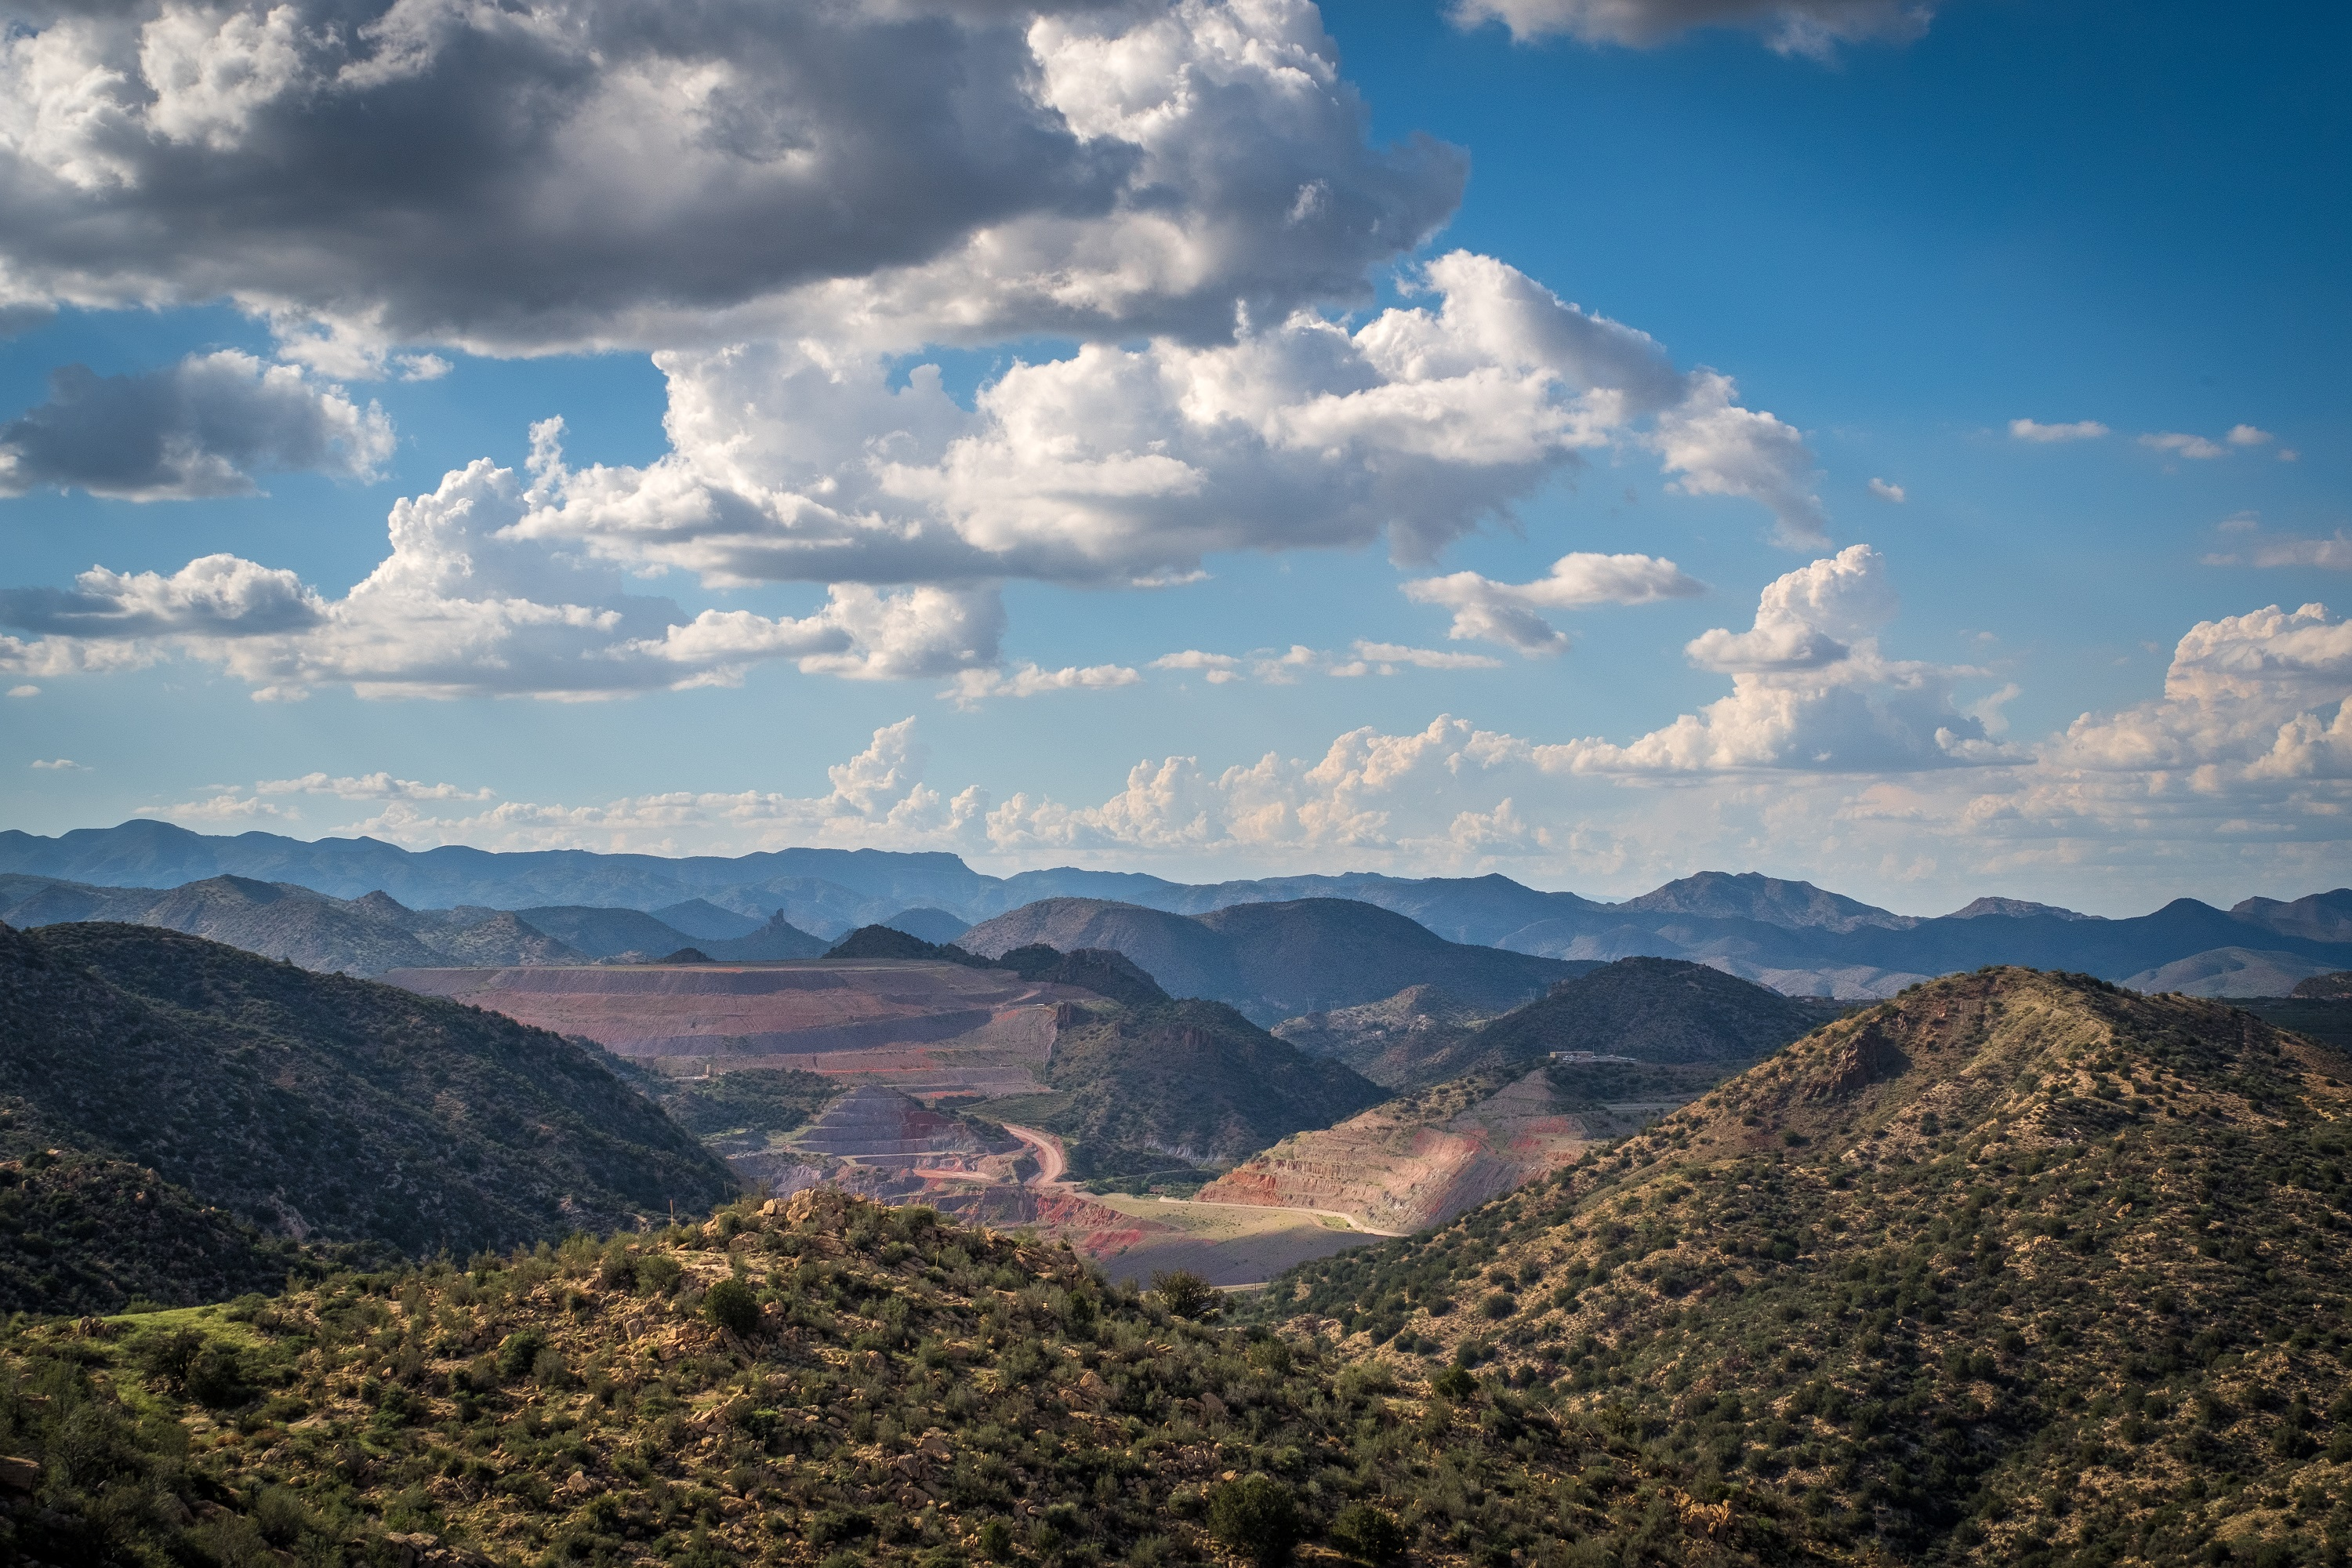 The Pinto Valley mine near Miami, Arizona, provides the world with much needed copper.